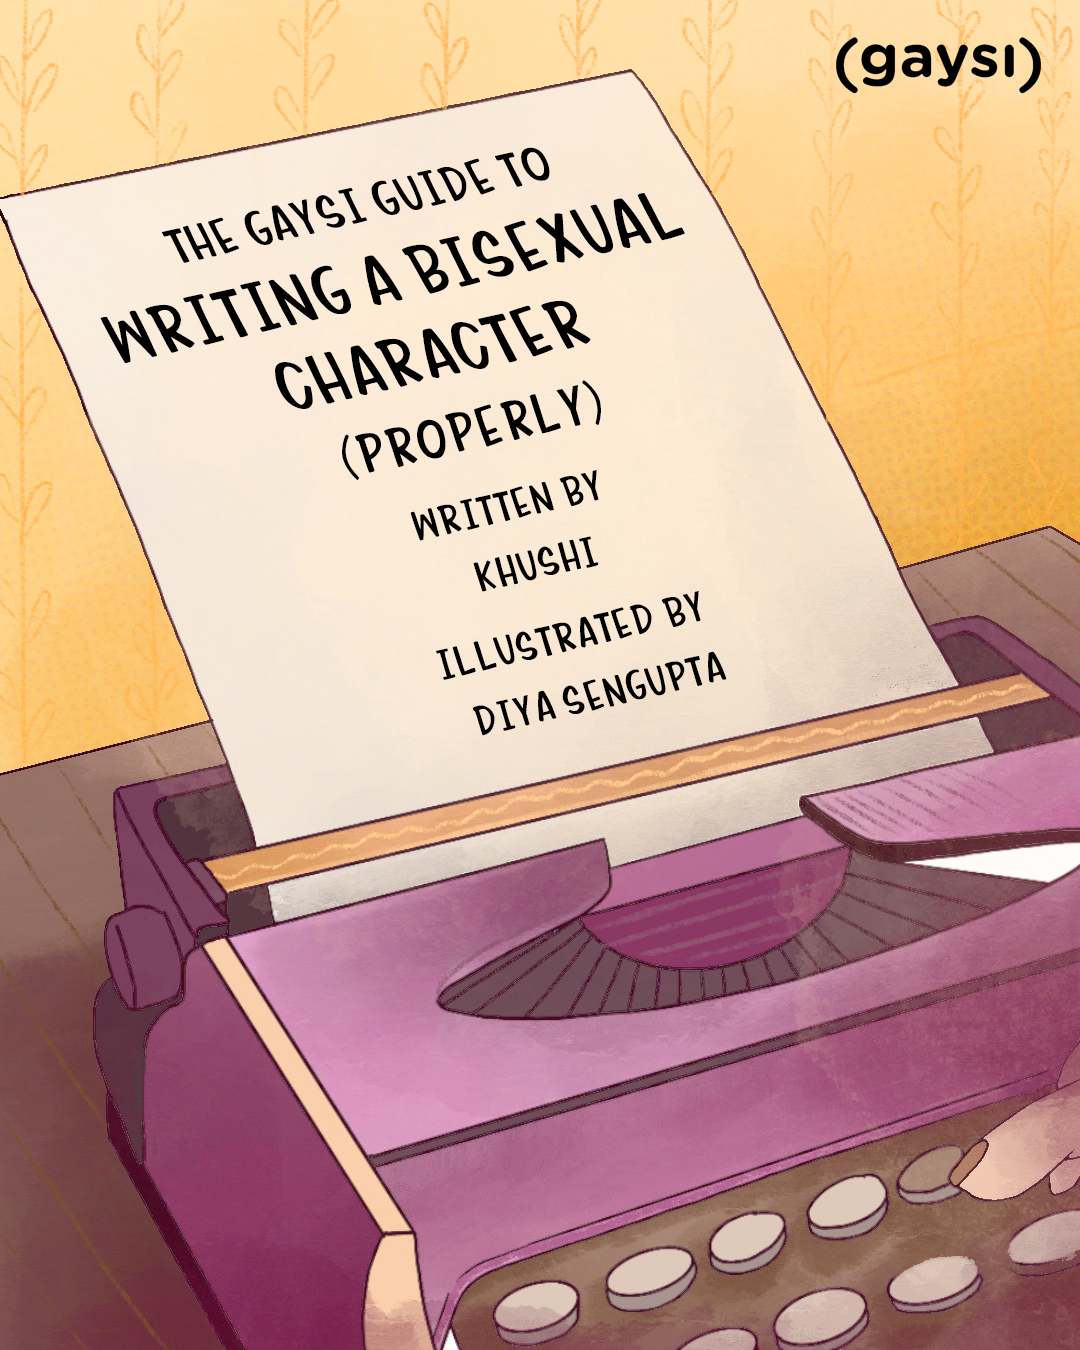 The Gaysi Guide To Writing A Bisexual Character (Properly)